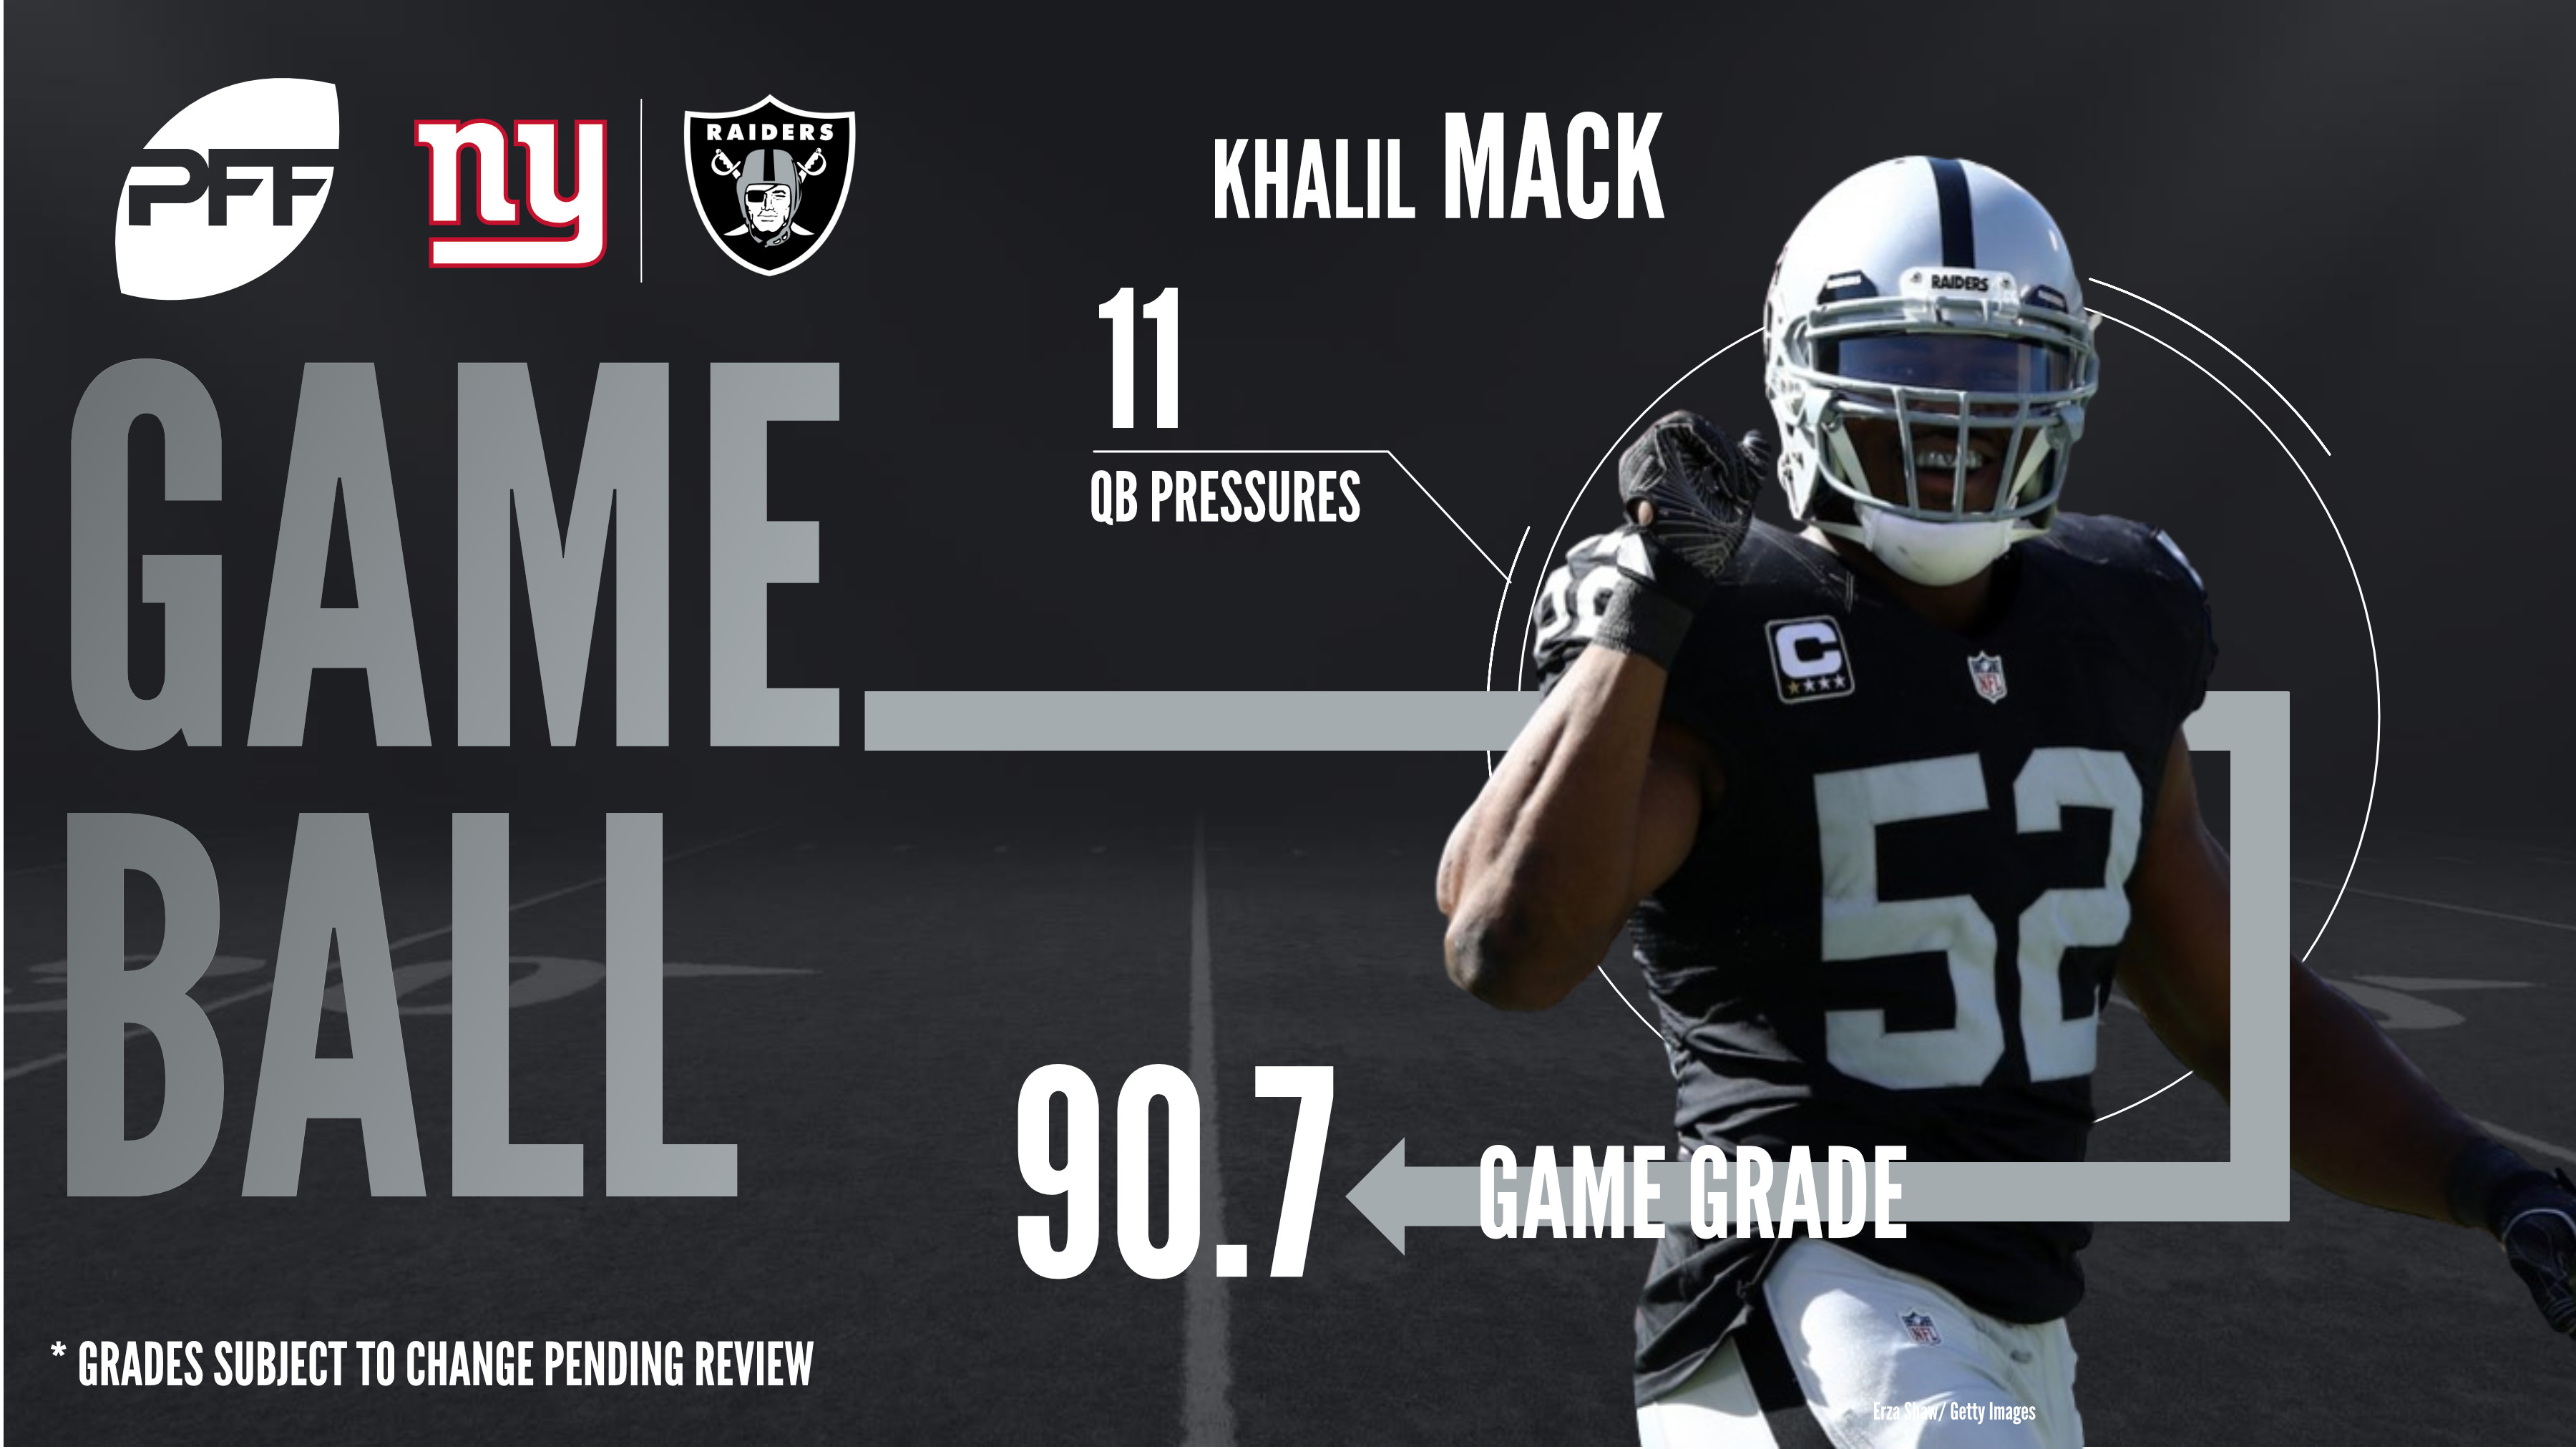 Oakland Raiders edge defender Khalil Mack